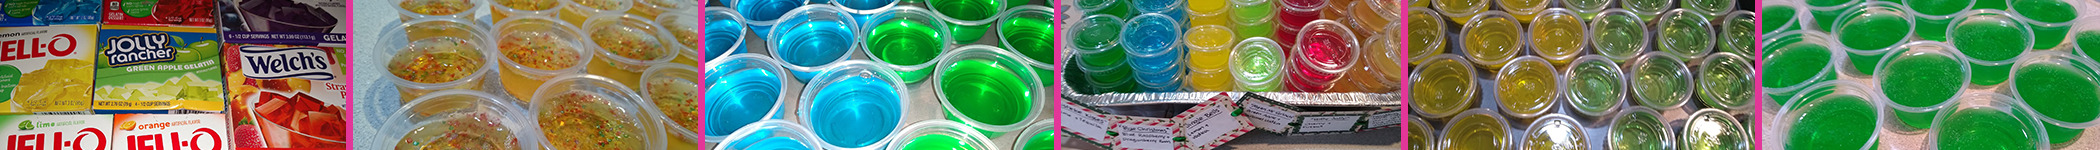 Total Party Guild's Jell-o Shots For D&D